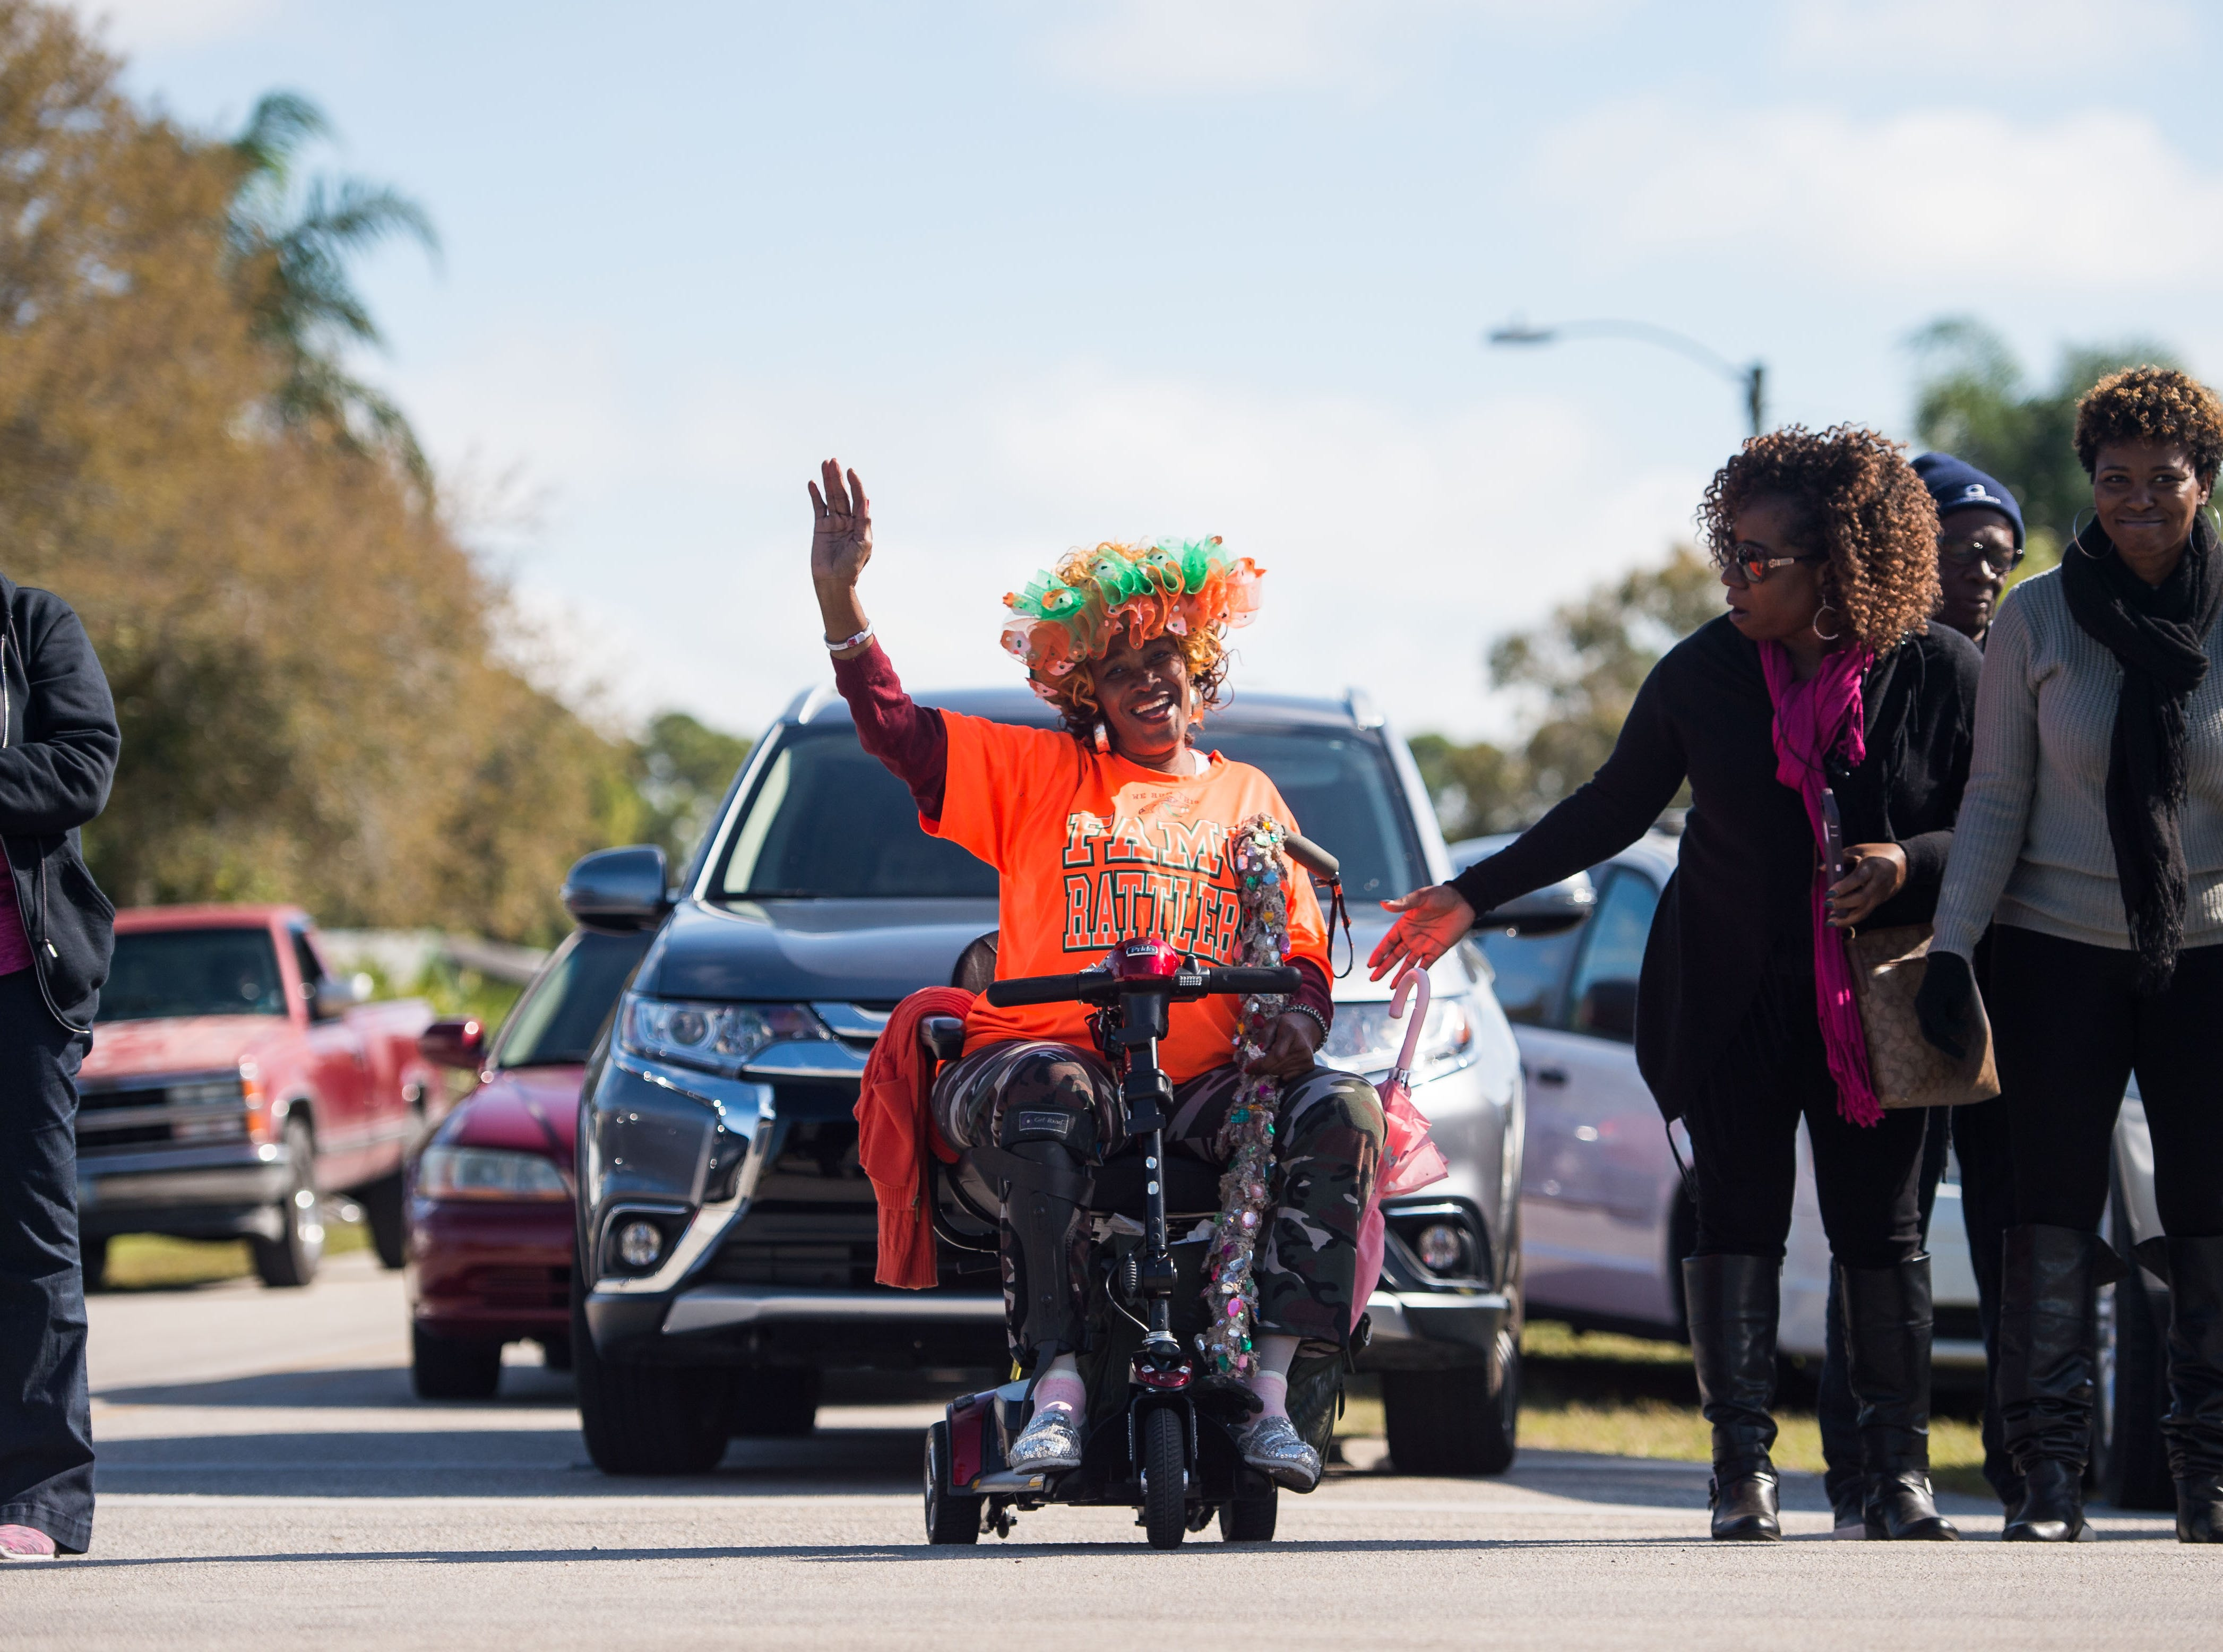 """Last year I was in a nursing home, I was sick,"" said Zeria Thomas, of Gifford, during the 2019 MLK Parade on Monday, Jan. 21, 2019, in Gifford. ""But thank God, I'm so glad to be back today, so I'm celebrating today,"" she added. ""Such a blessing, such a blessing."""